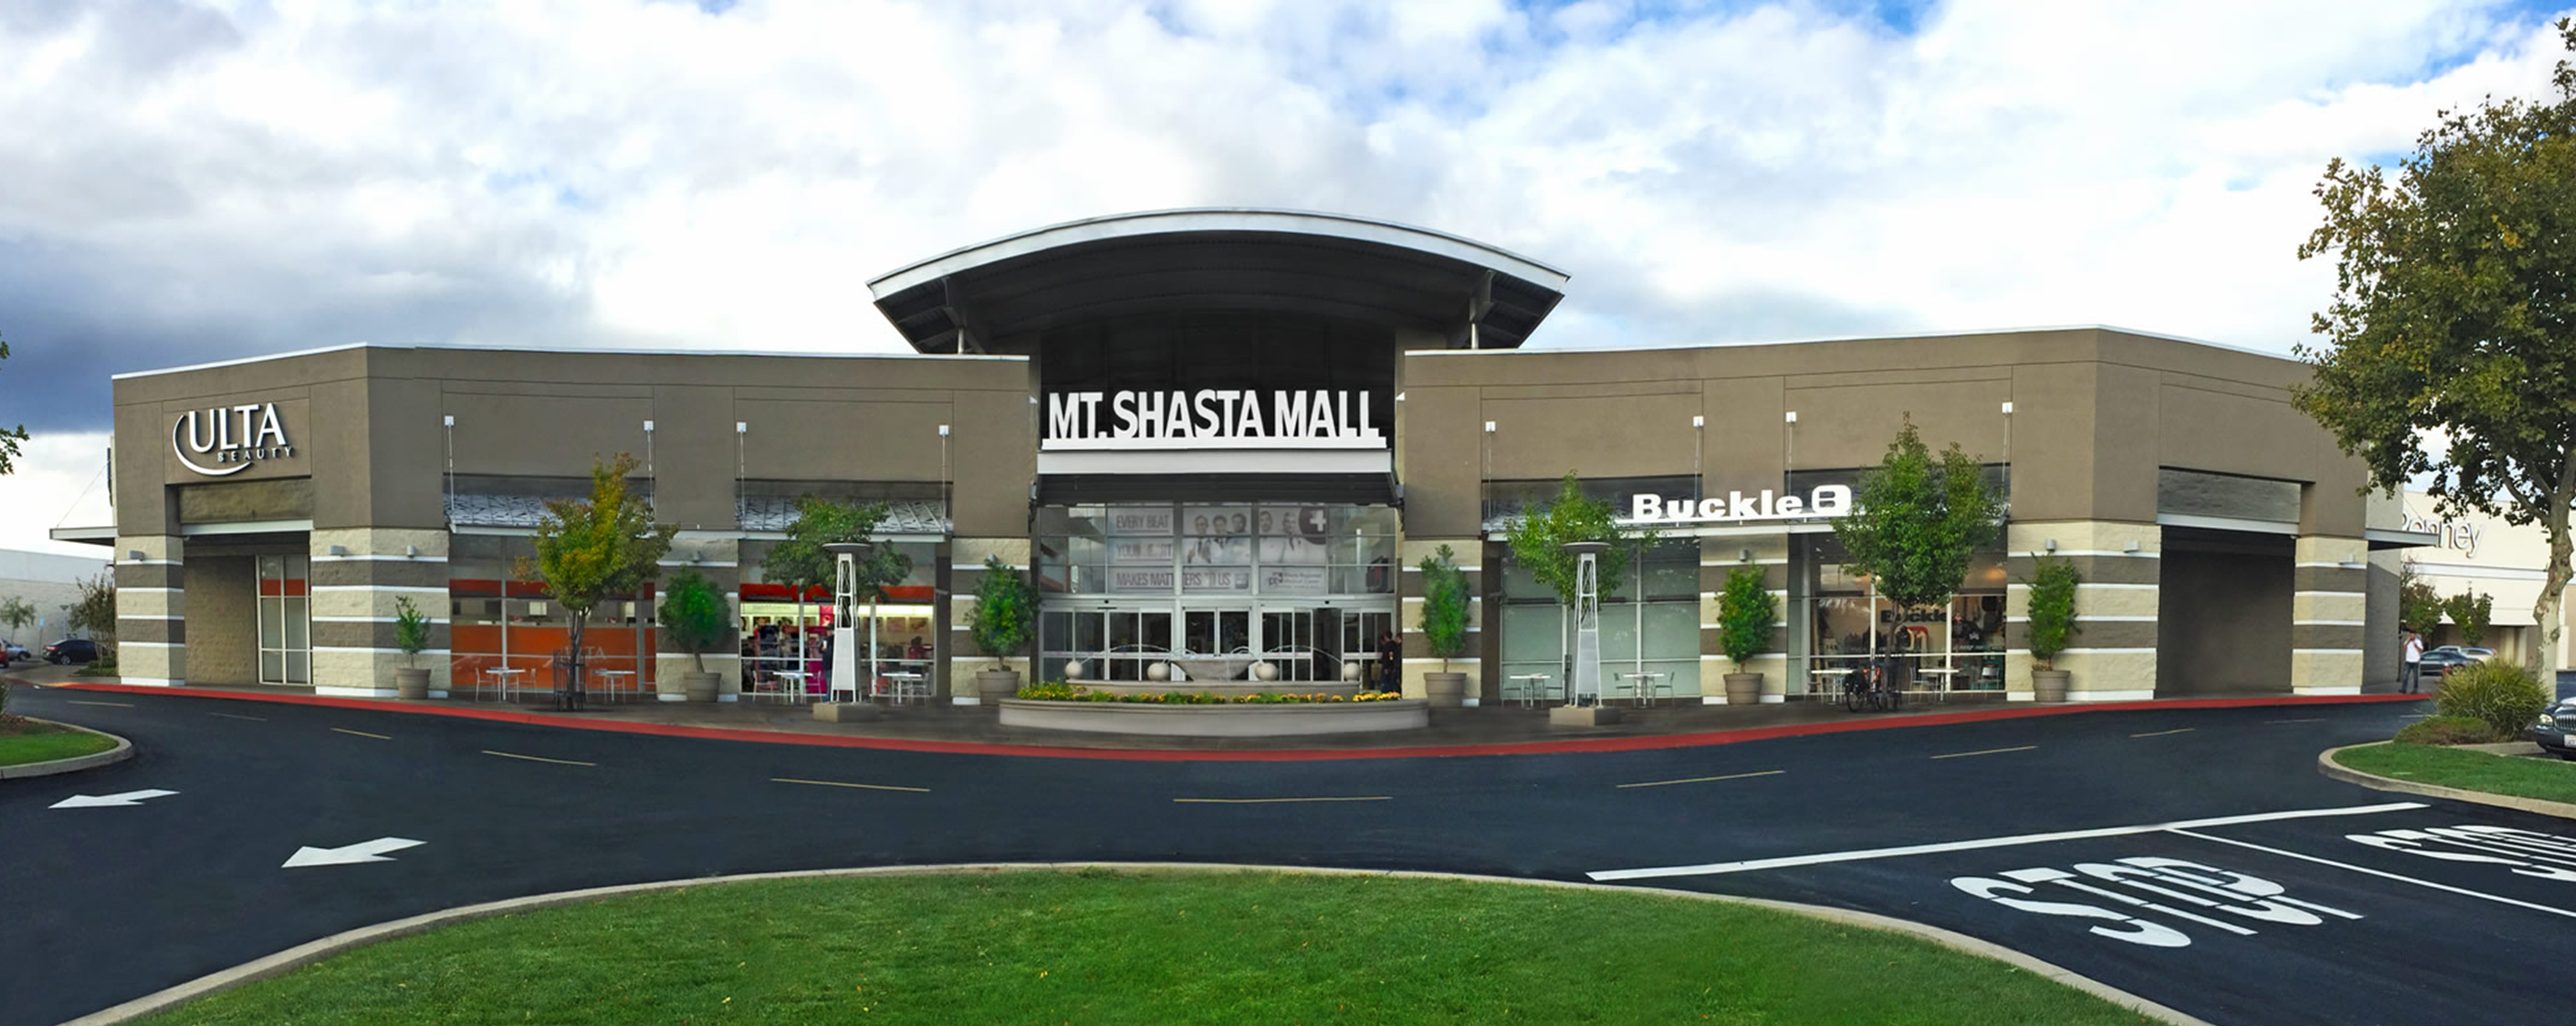 Exterior view of Mt. Shasta Mall